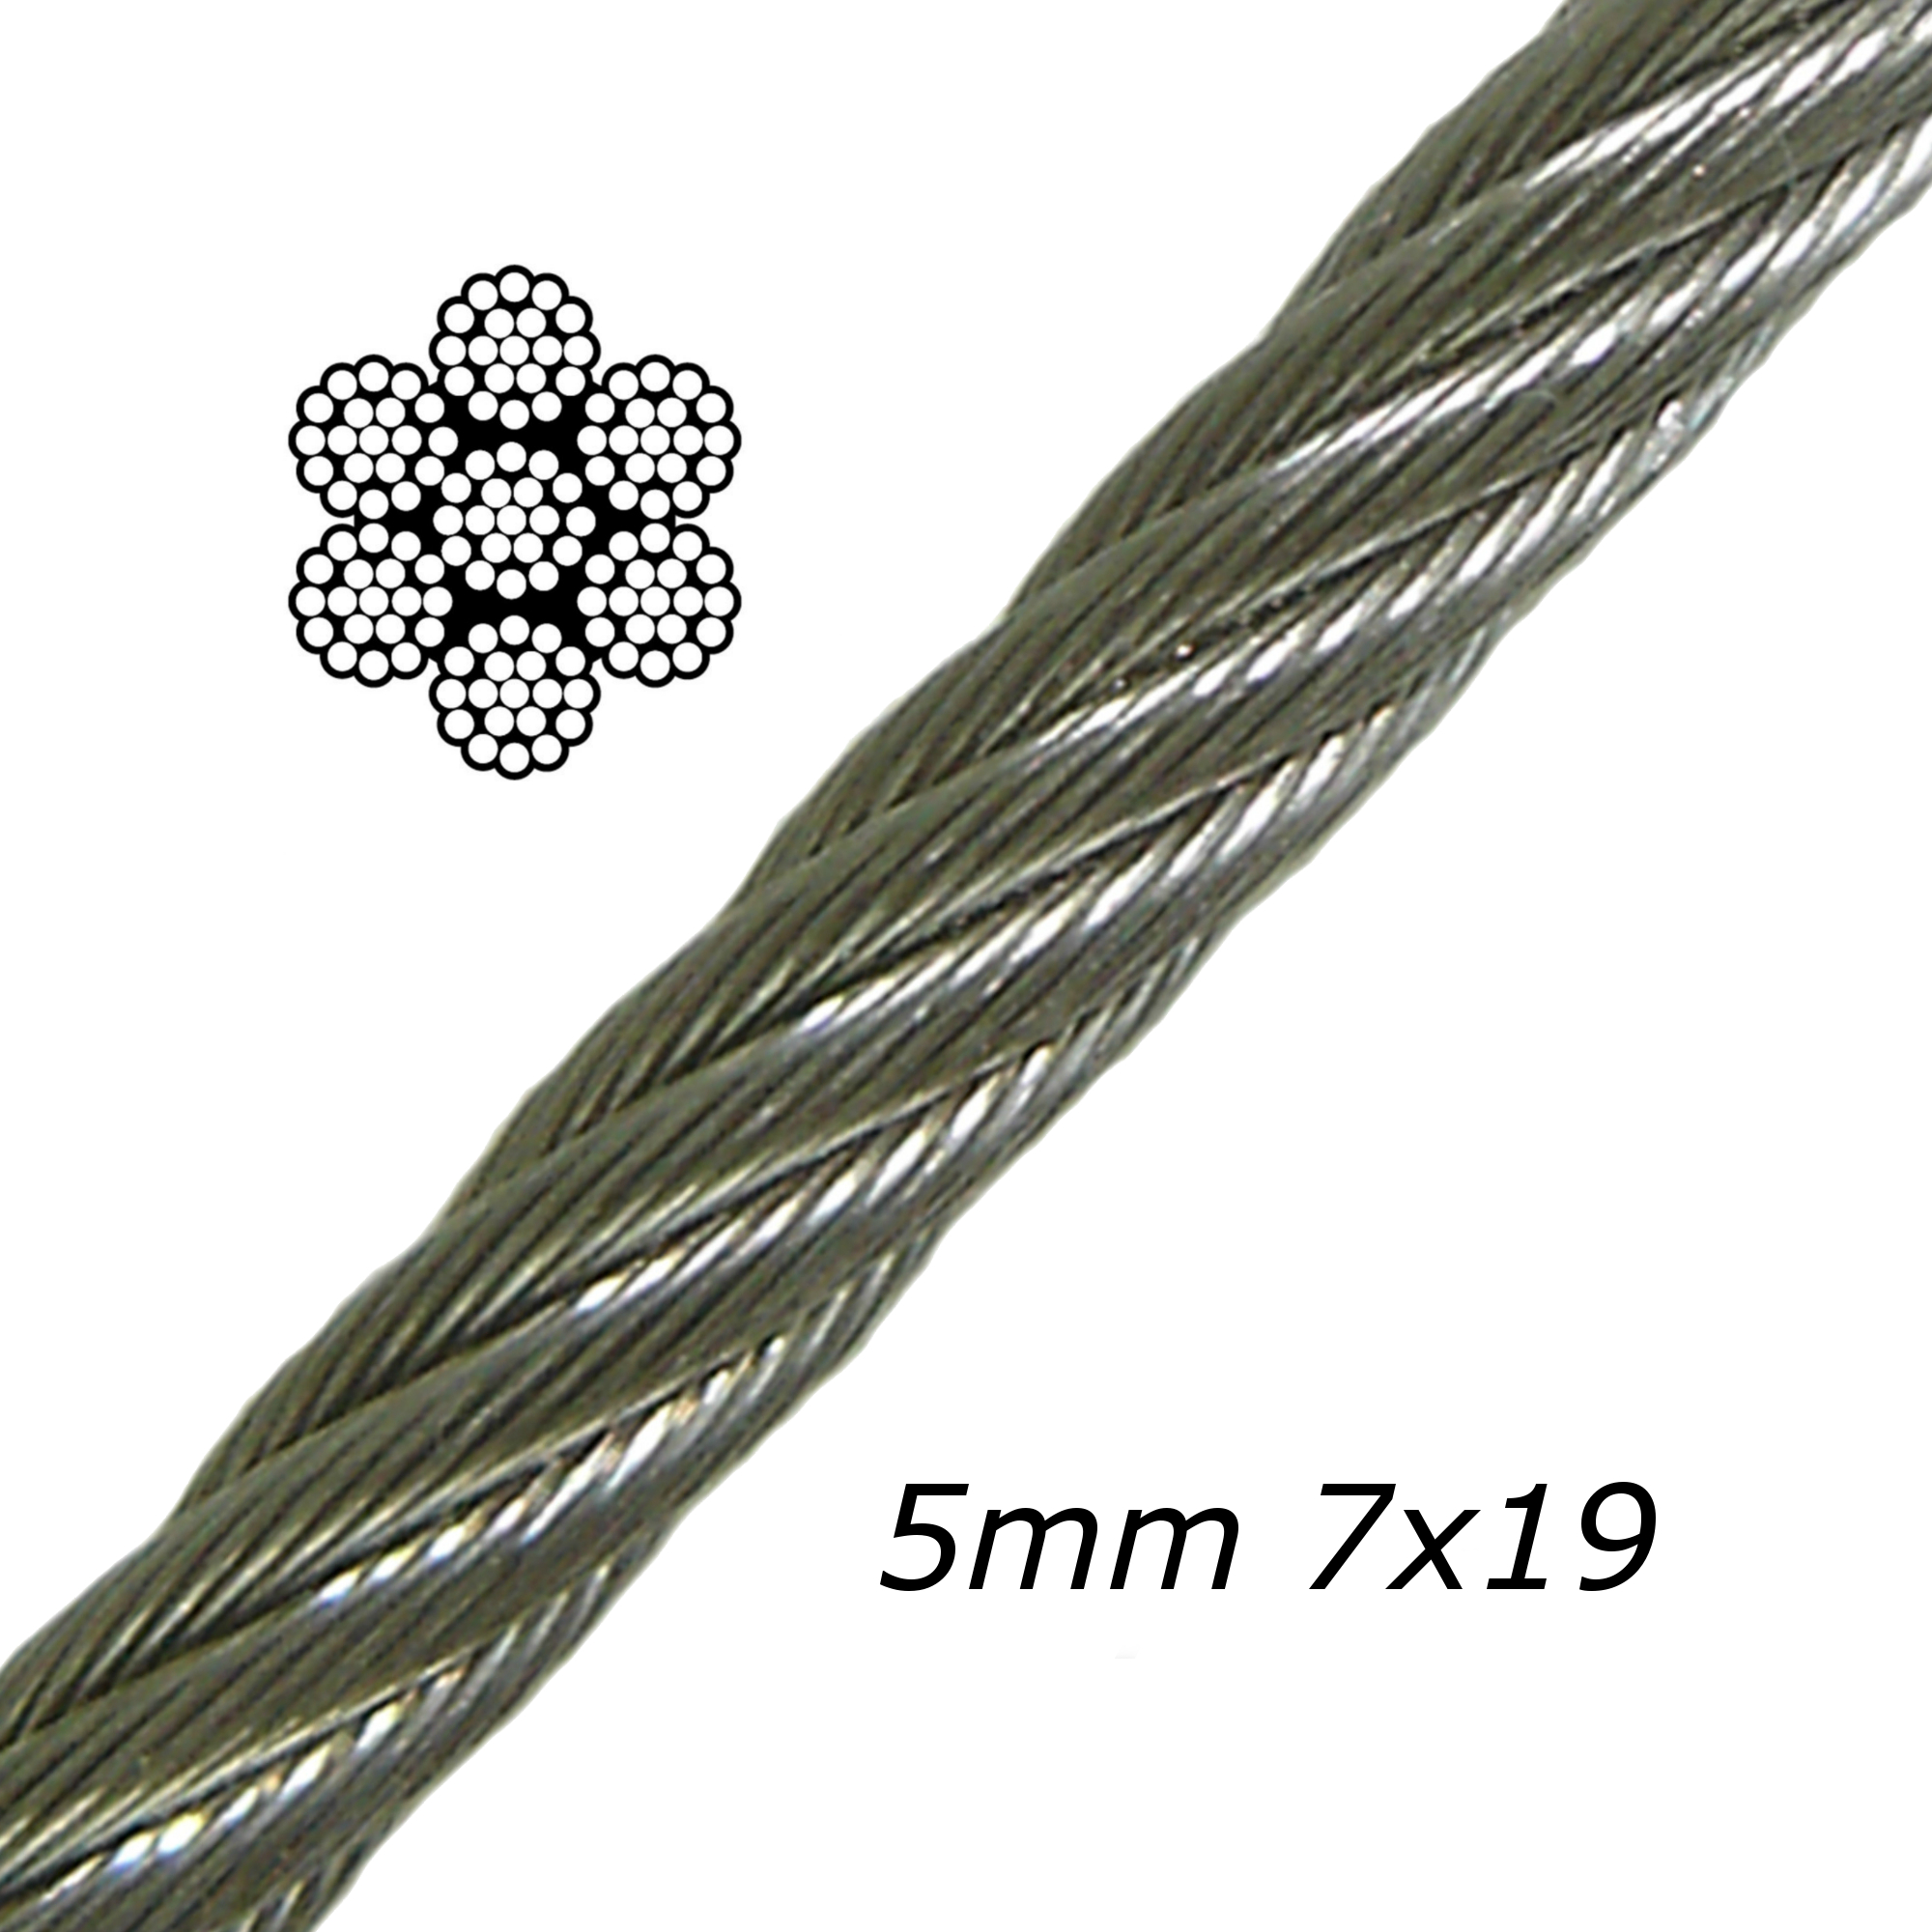 5mm Stainless Steel Cable 7x19